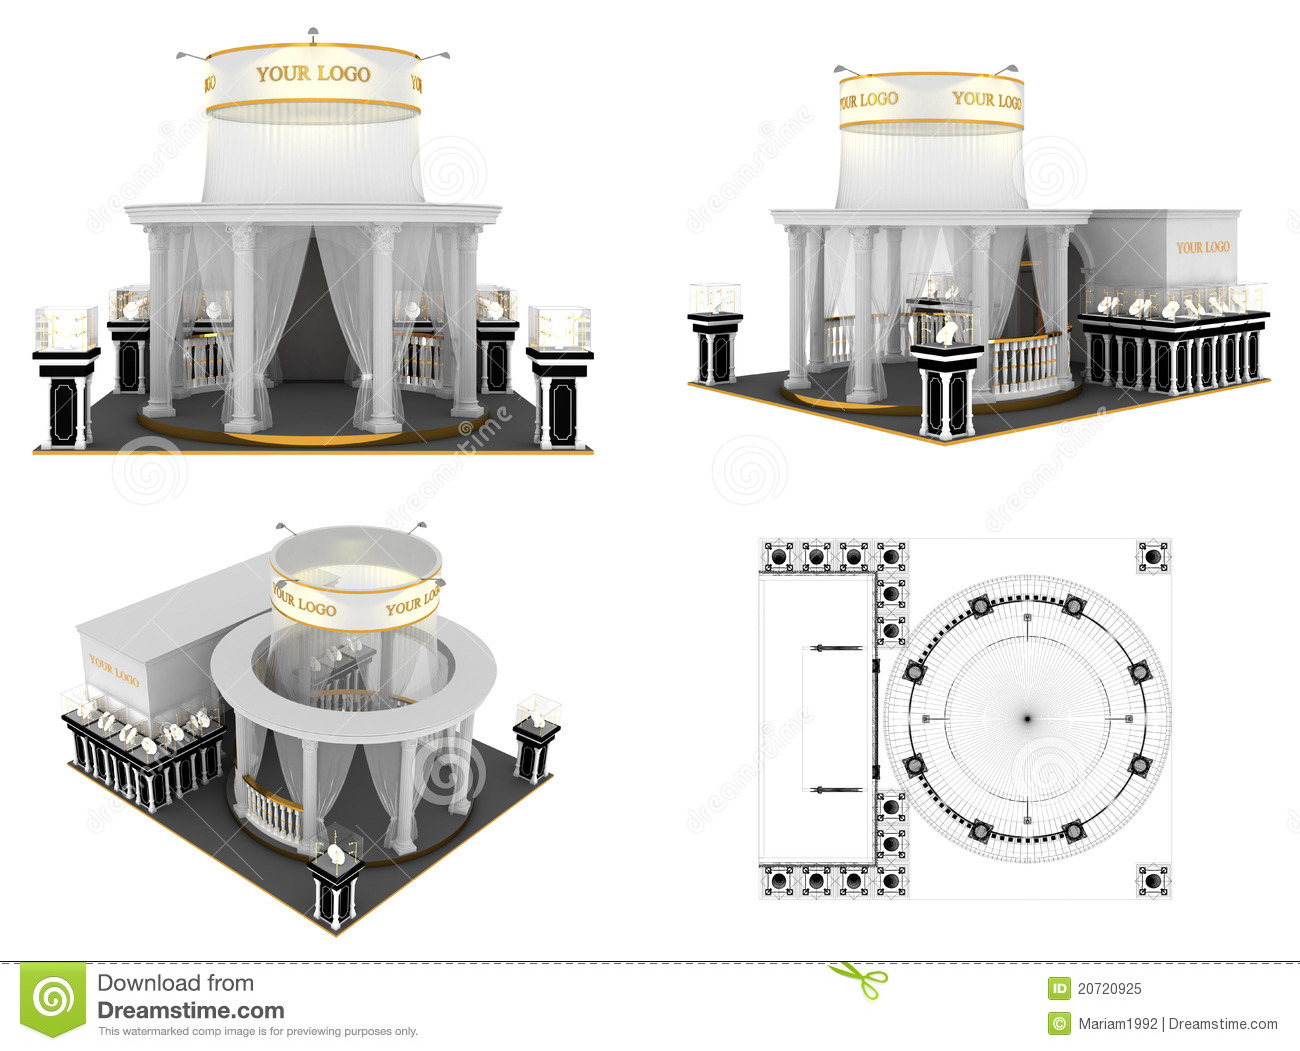 Exhibition Stand Design Illustrator : Exhibition stand stock illustration image of indoor